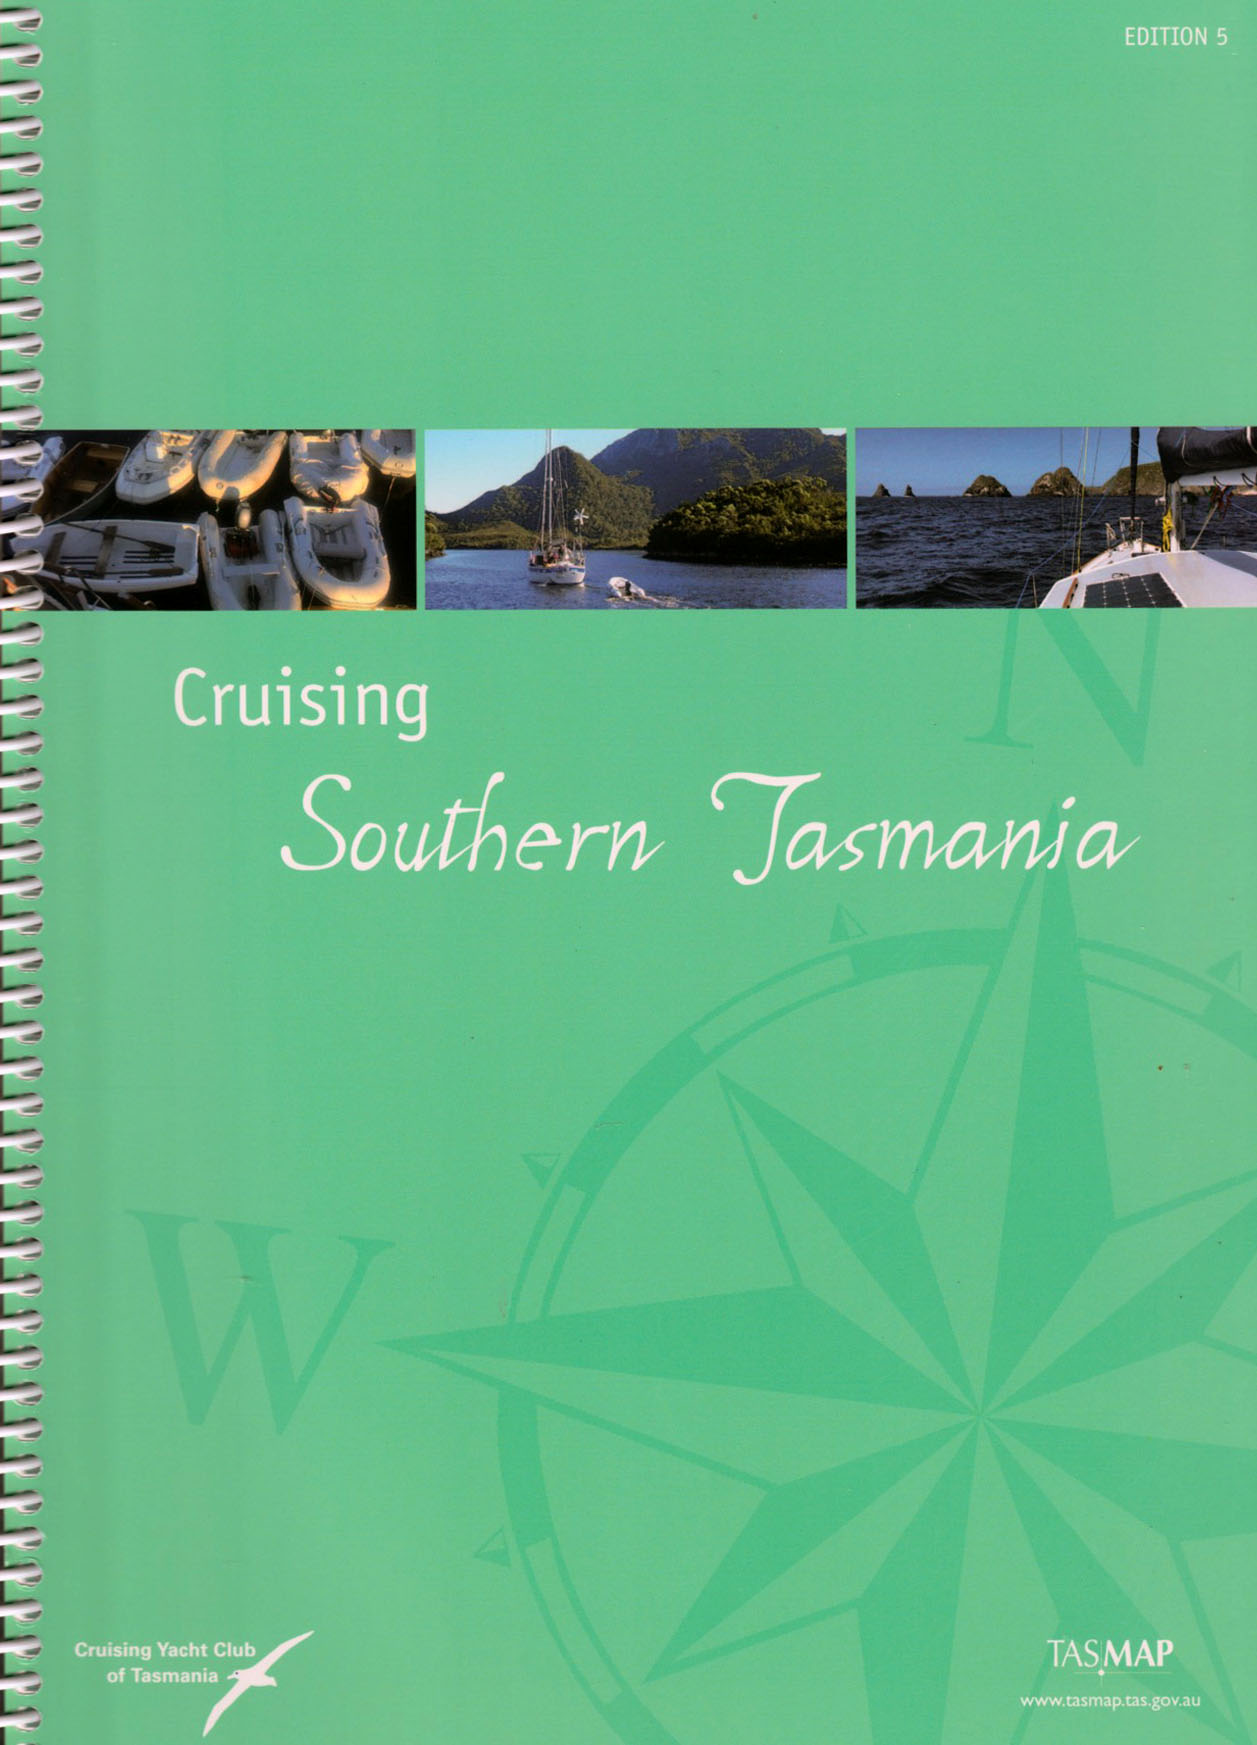 Cruising Southern Tasmania - cruising & anchorage guide to waterways of the Derwent River, D'Entrecasteaux Channel, Huon River & tributaries